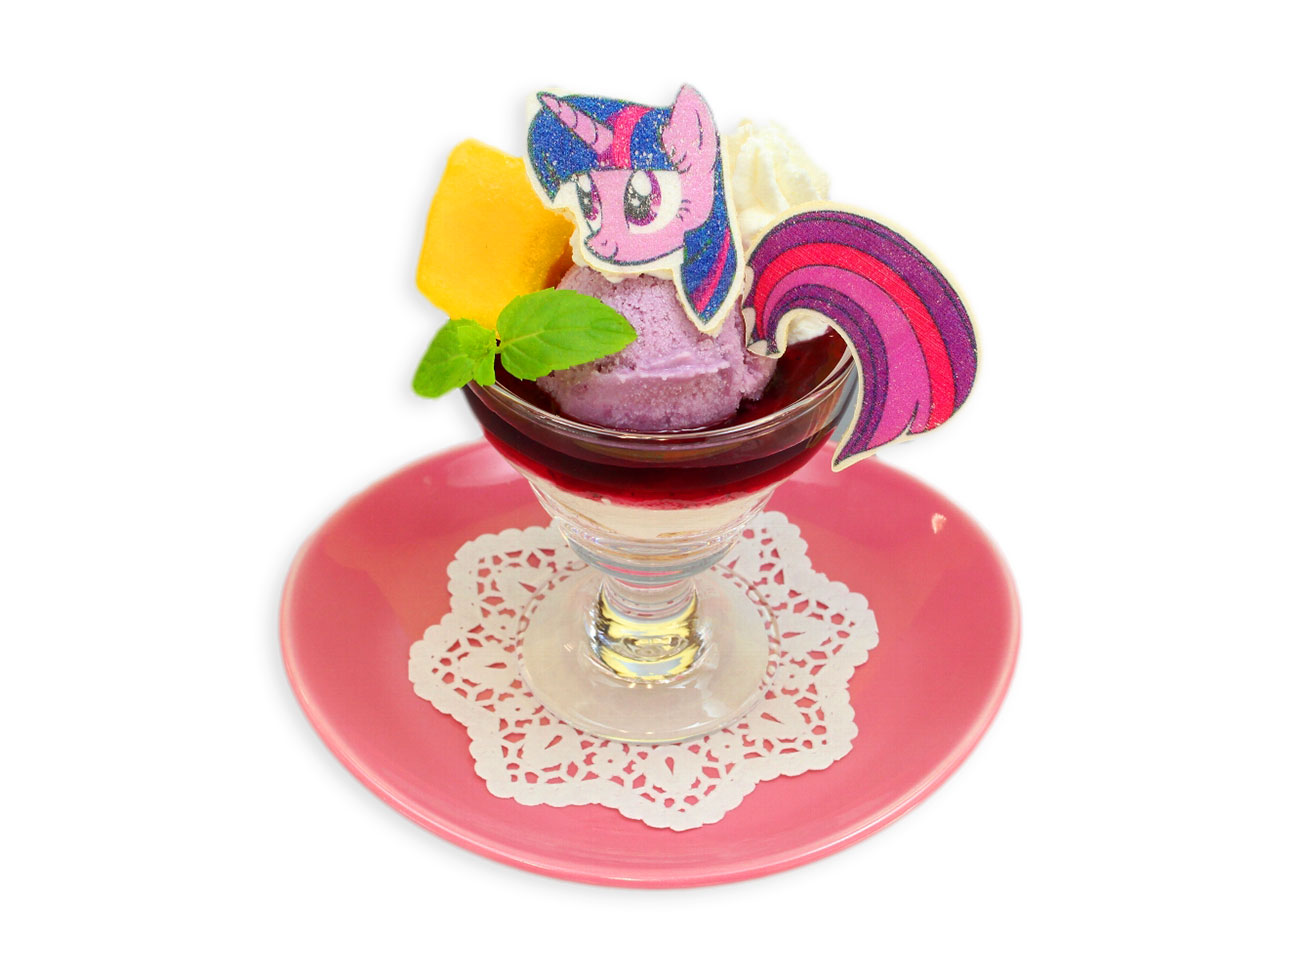 my little pony cafe in tokyo